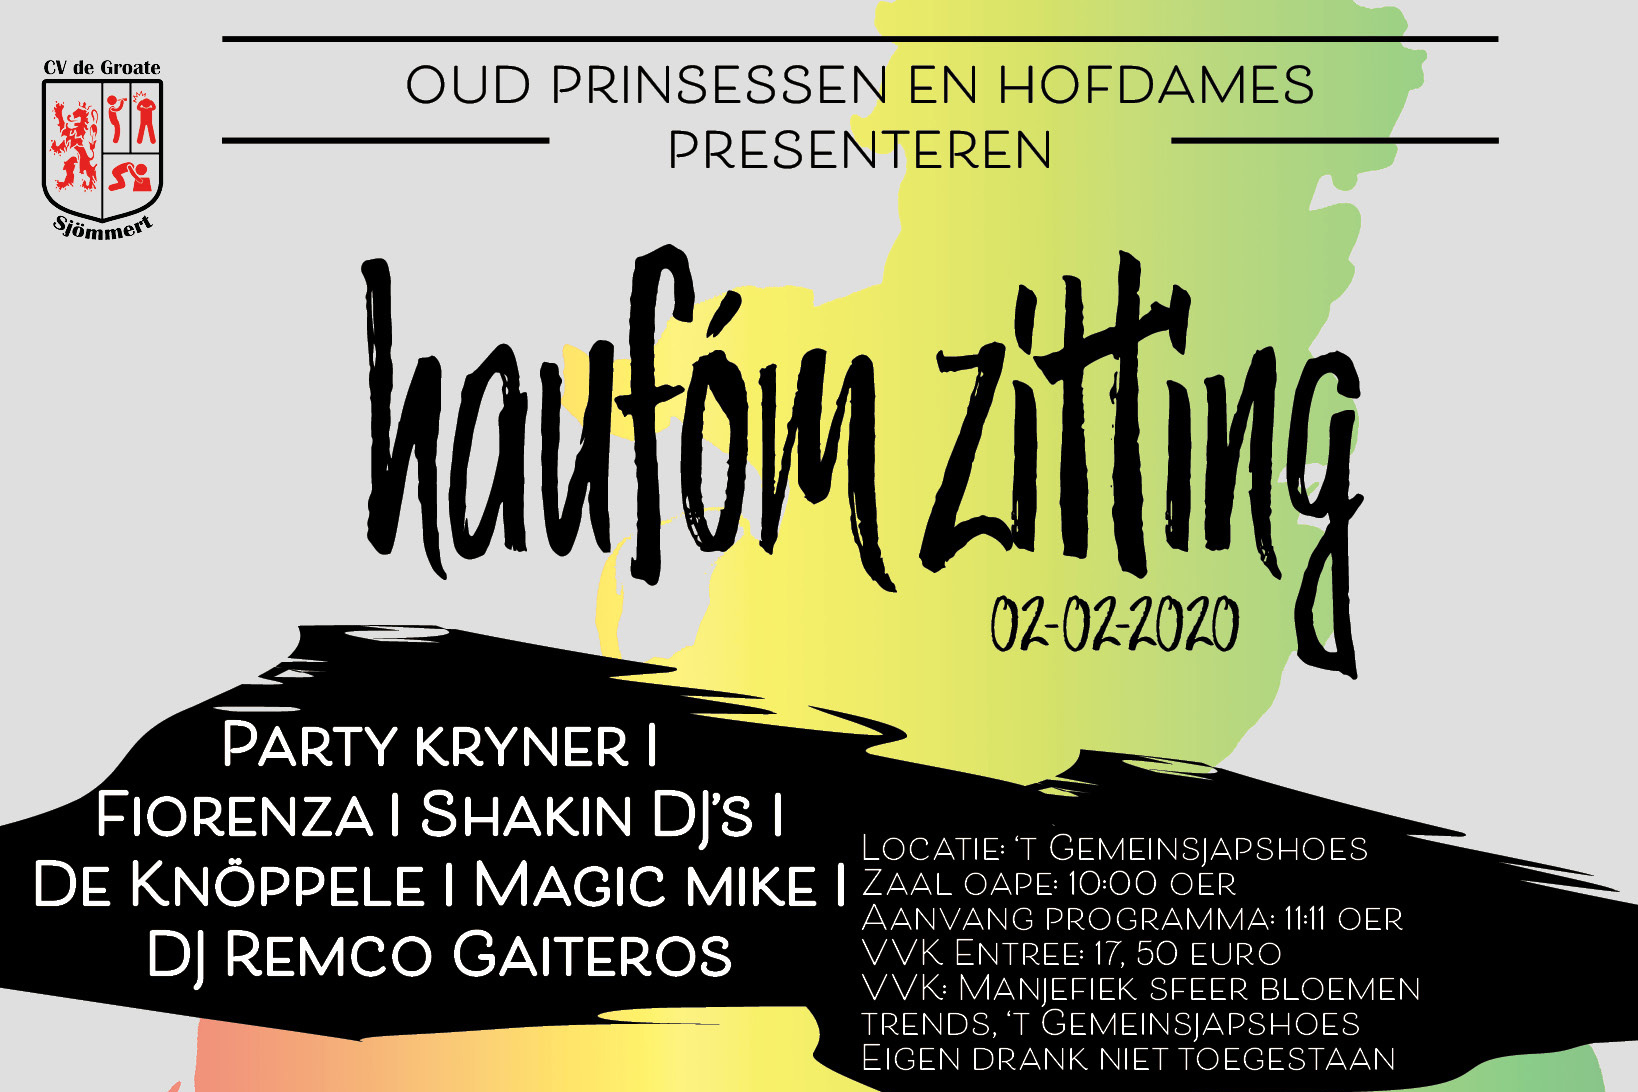 Evenement Haufóm zitting website